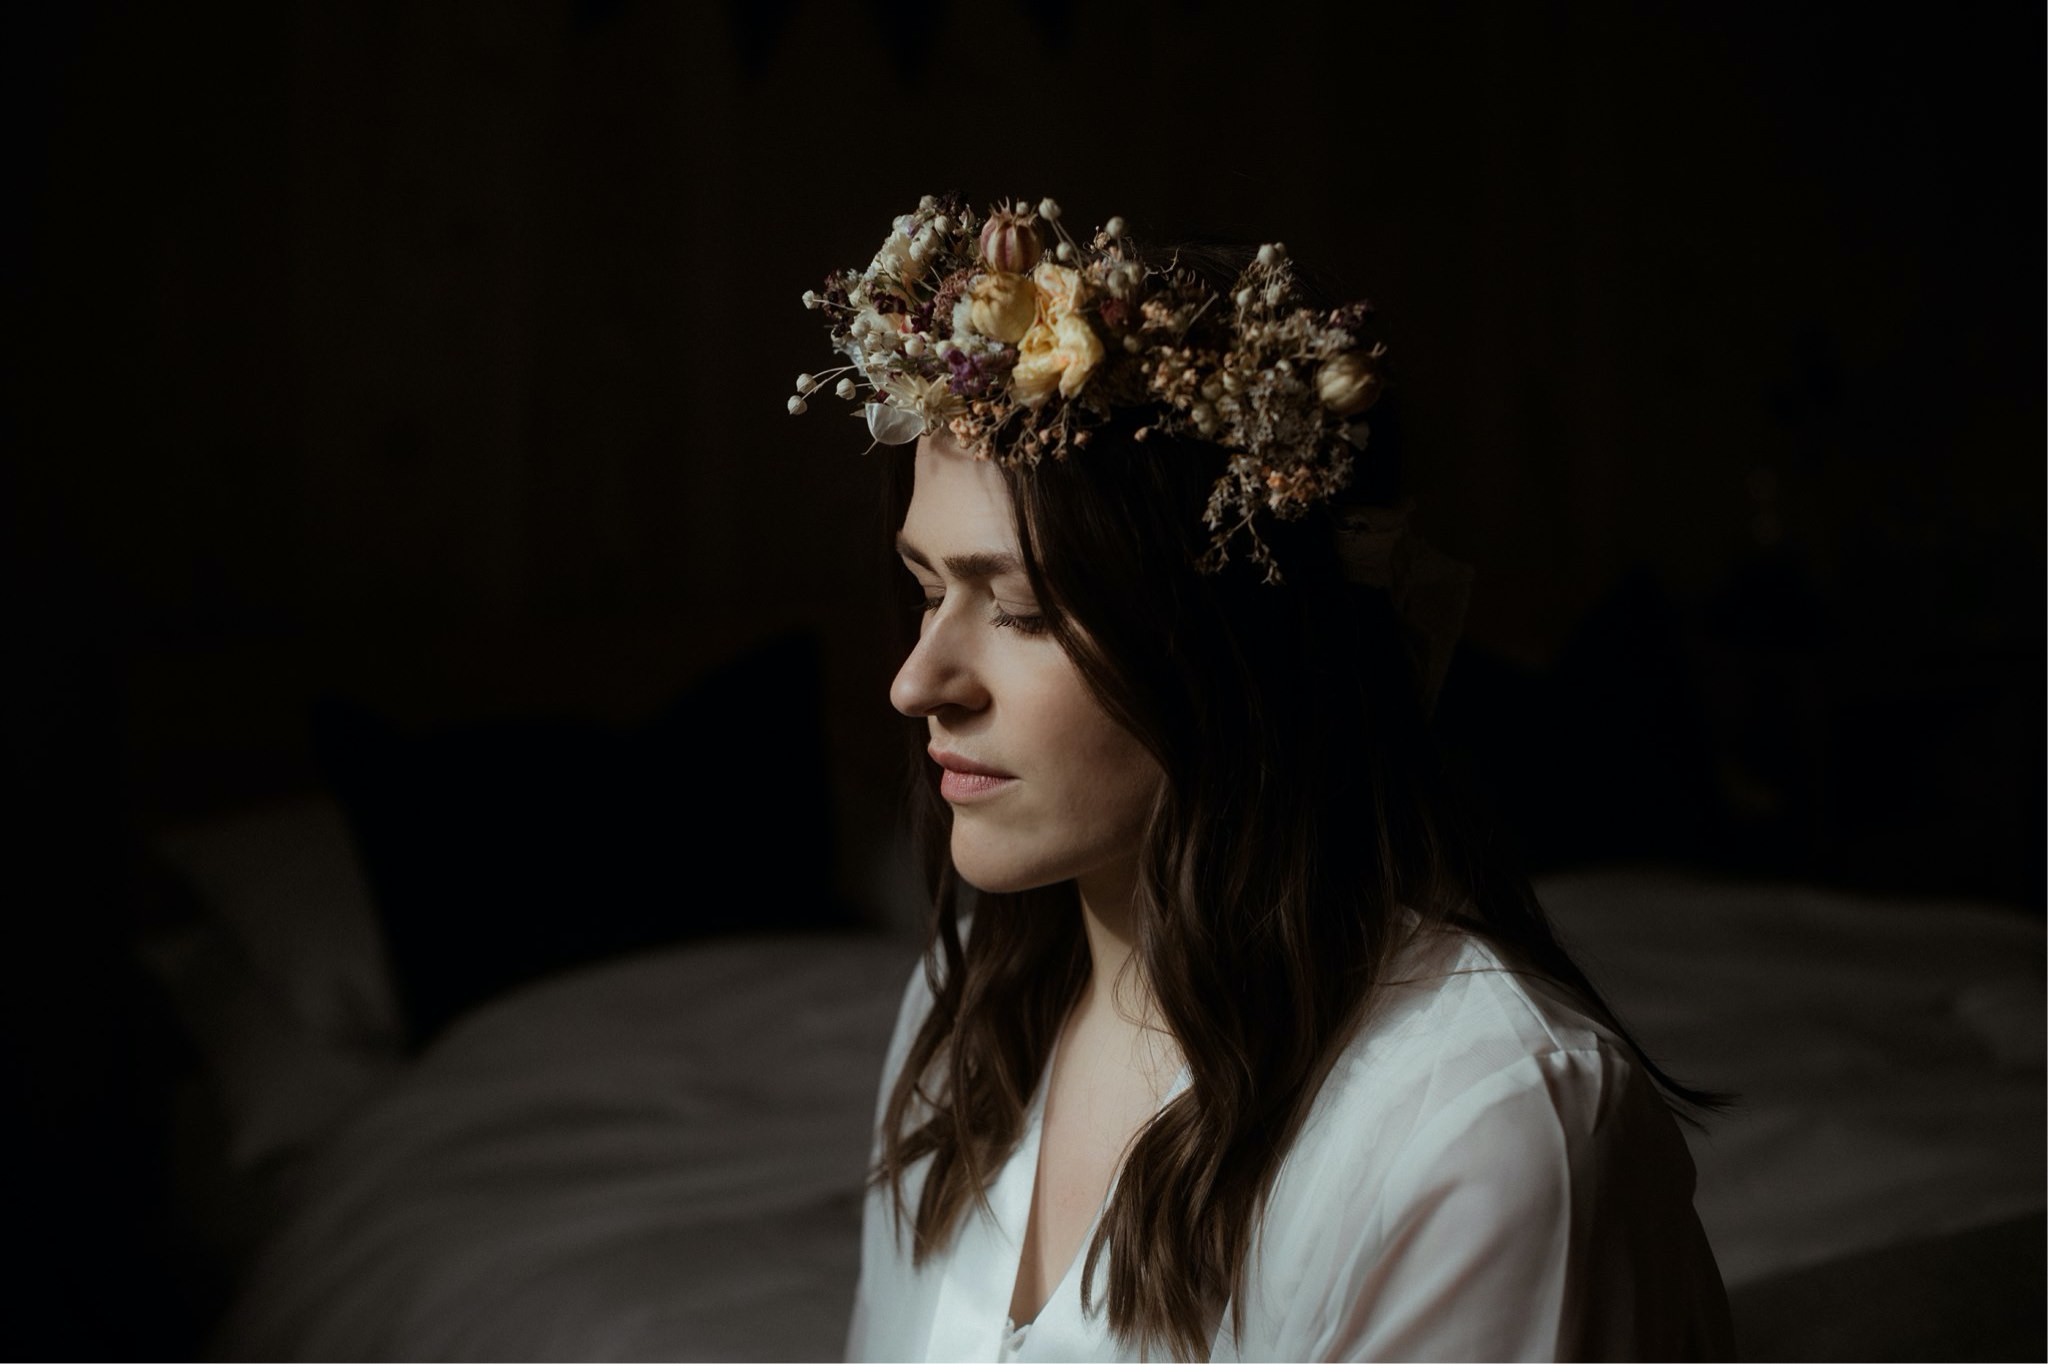 Bride with flower crown against a dark backdrop at a Scottish elopement wedding